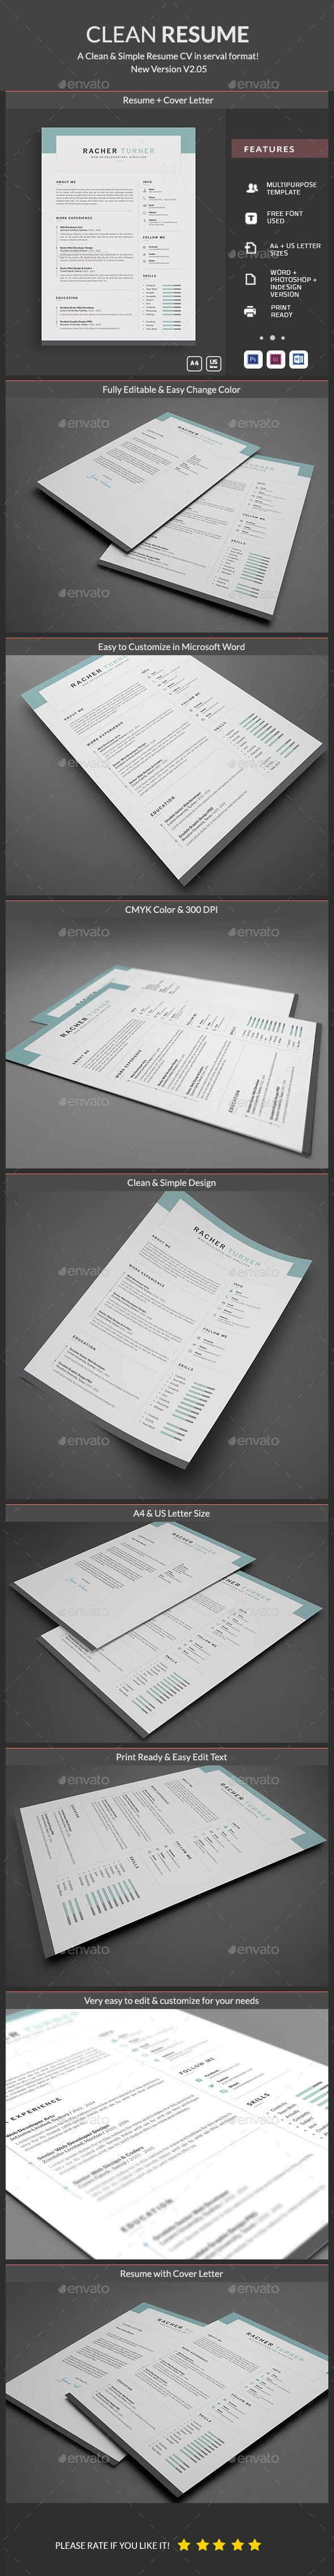 Template For A Resume In Word%0A Buy Resume by ElegantDesign on GraphicRiver  Simple and Clean Resume  Template  A Clean Cover Letter